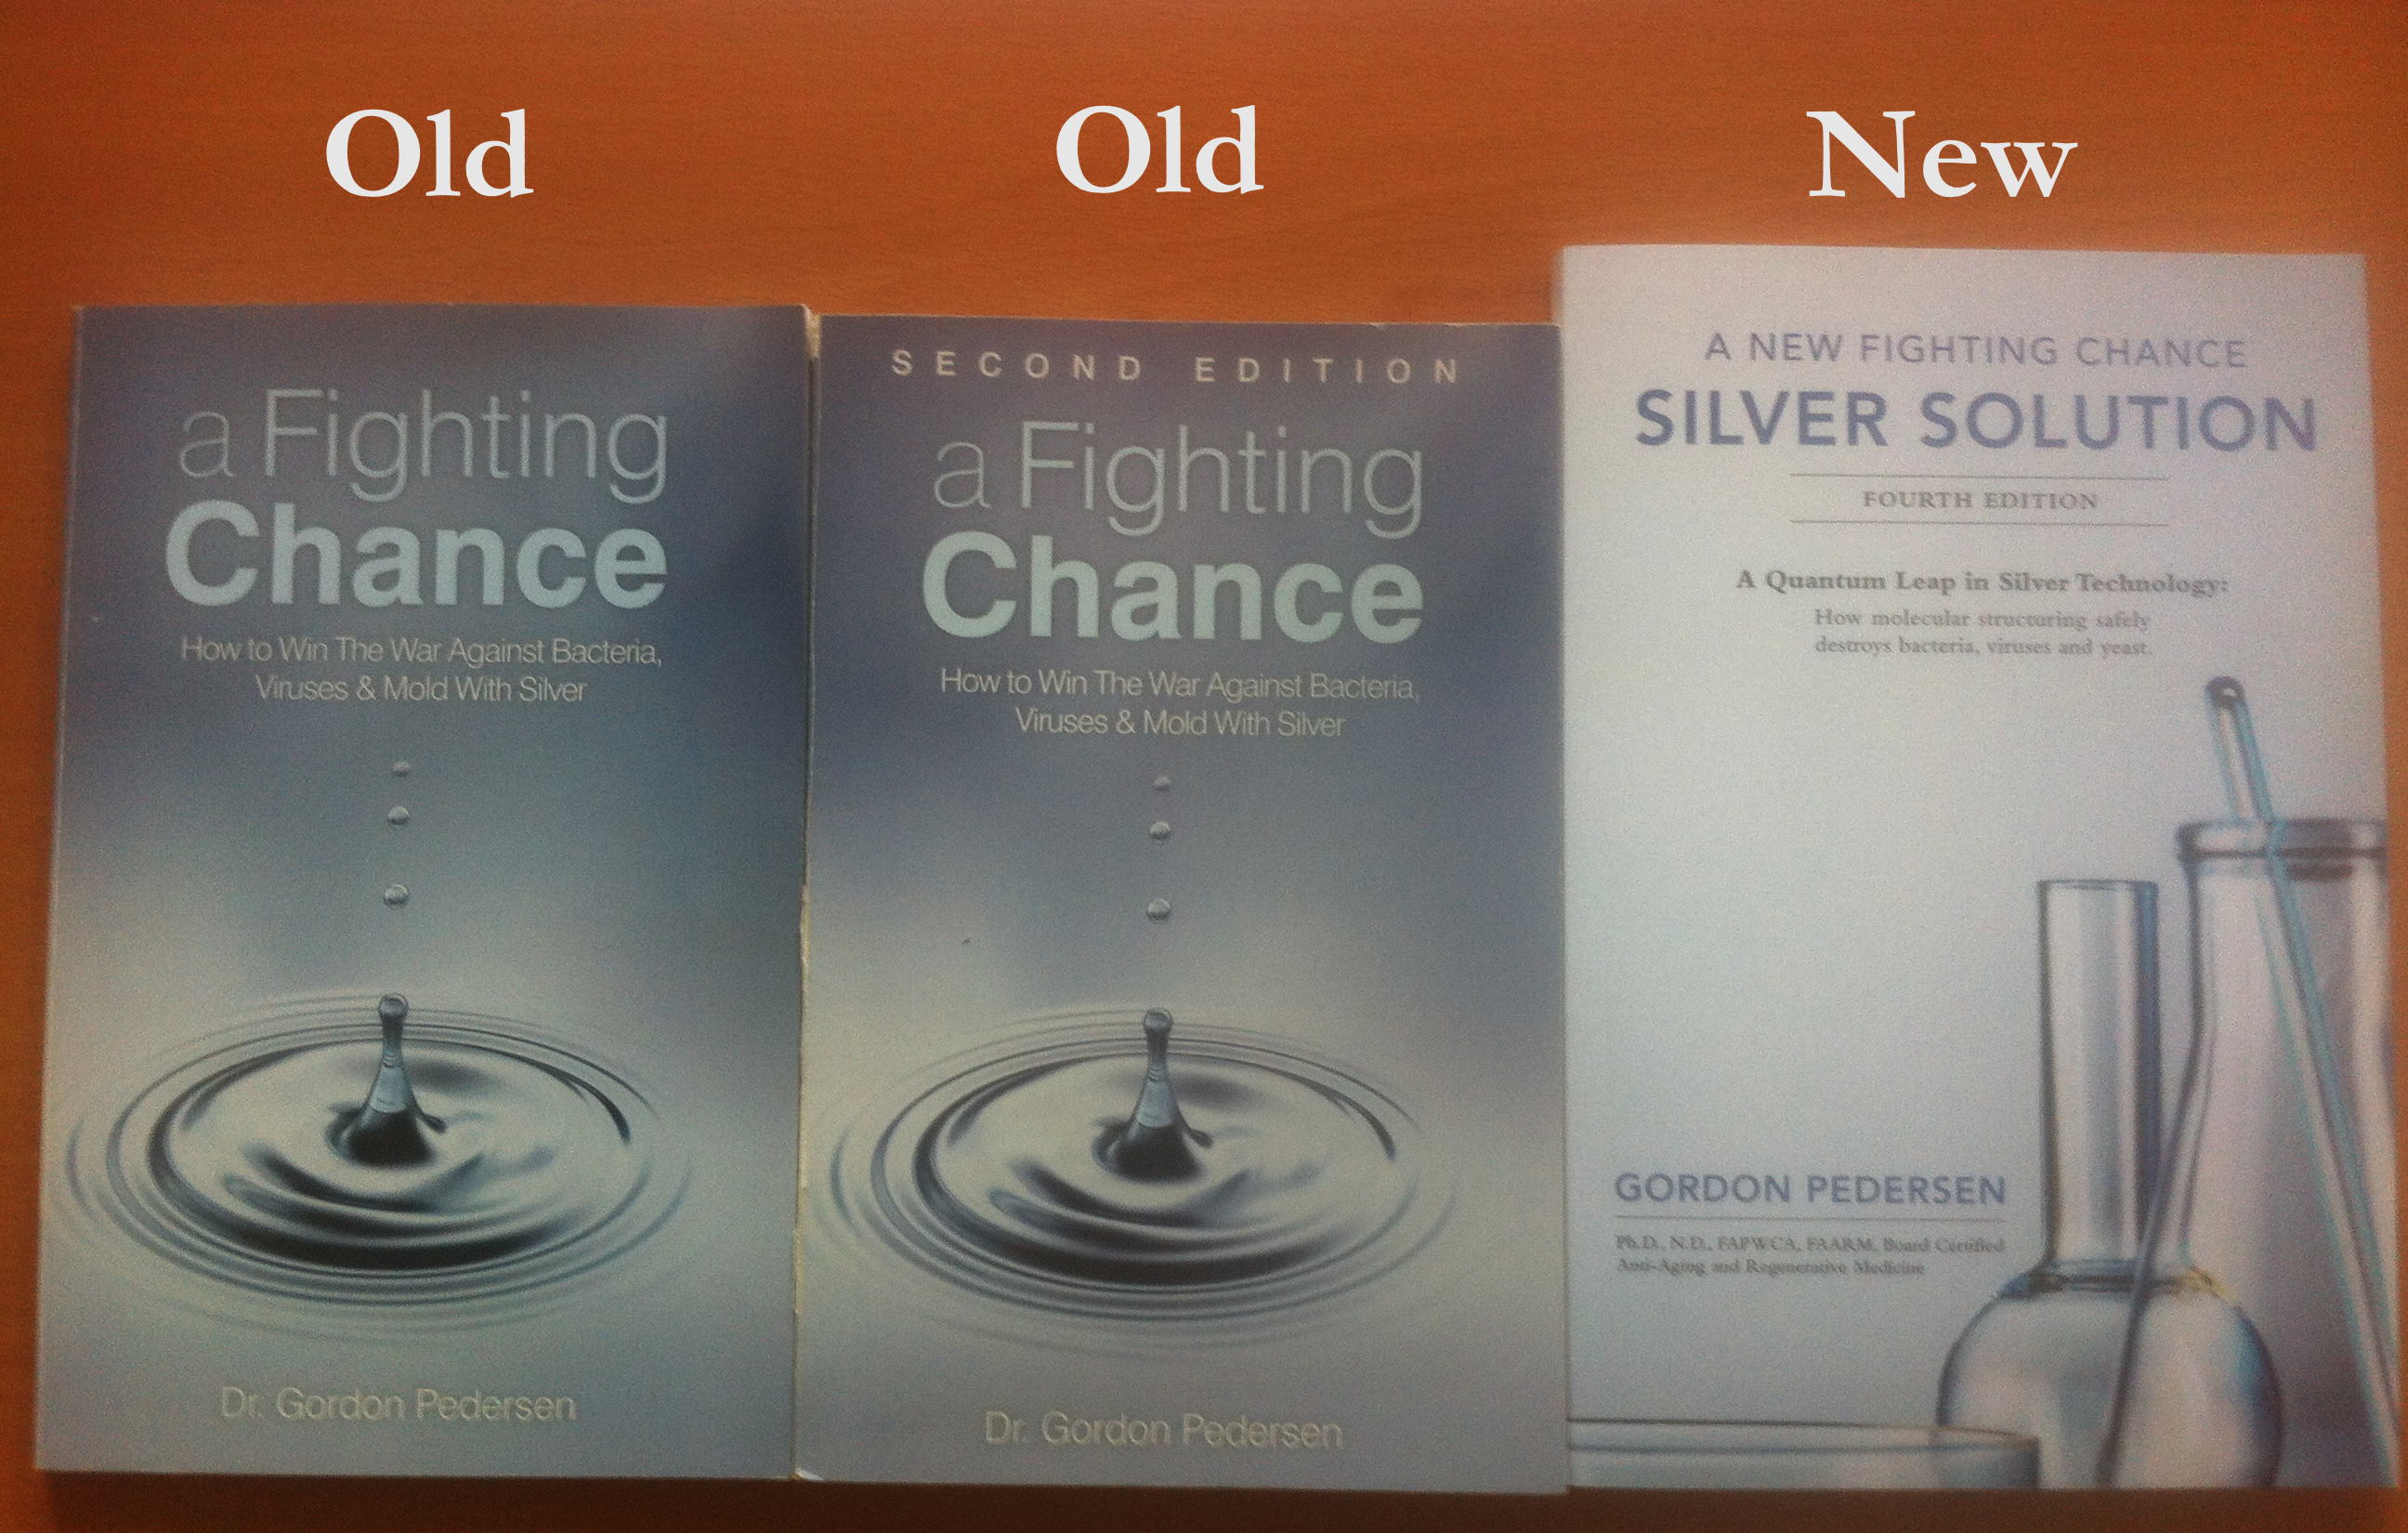 A Fighting Chance & A New Fighting Chance - Dr. Gordon Pedersen Books